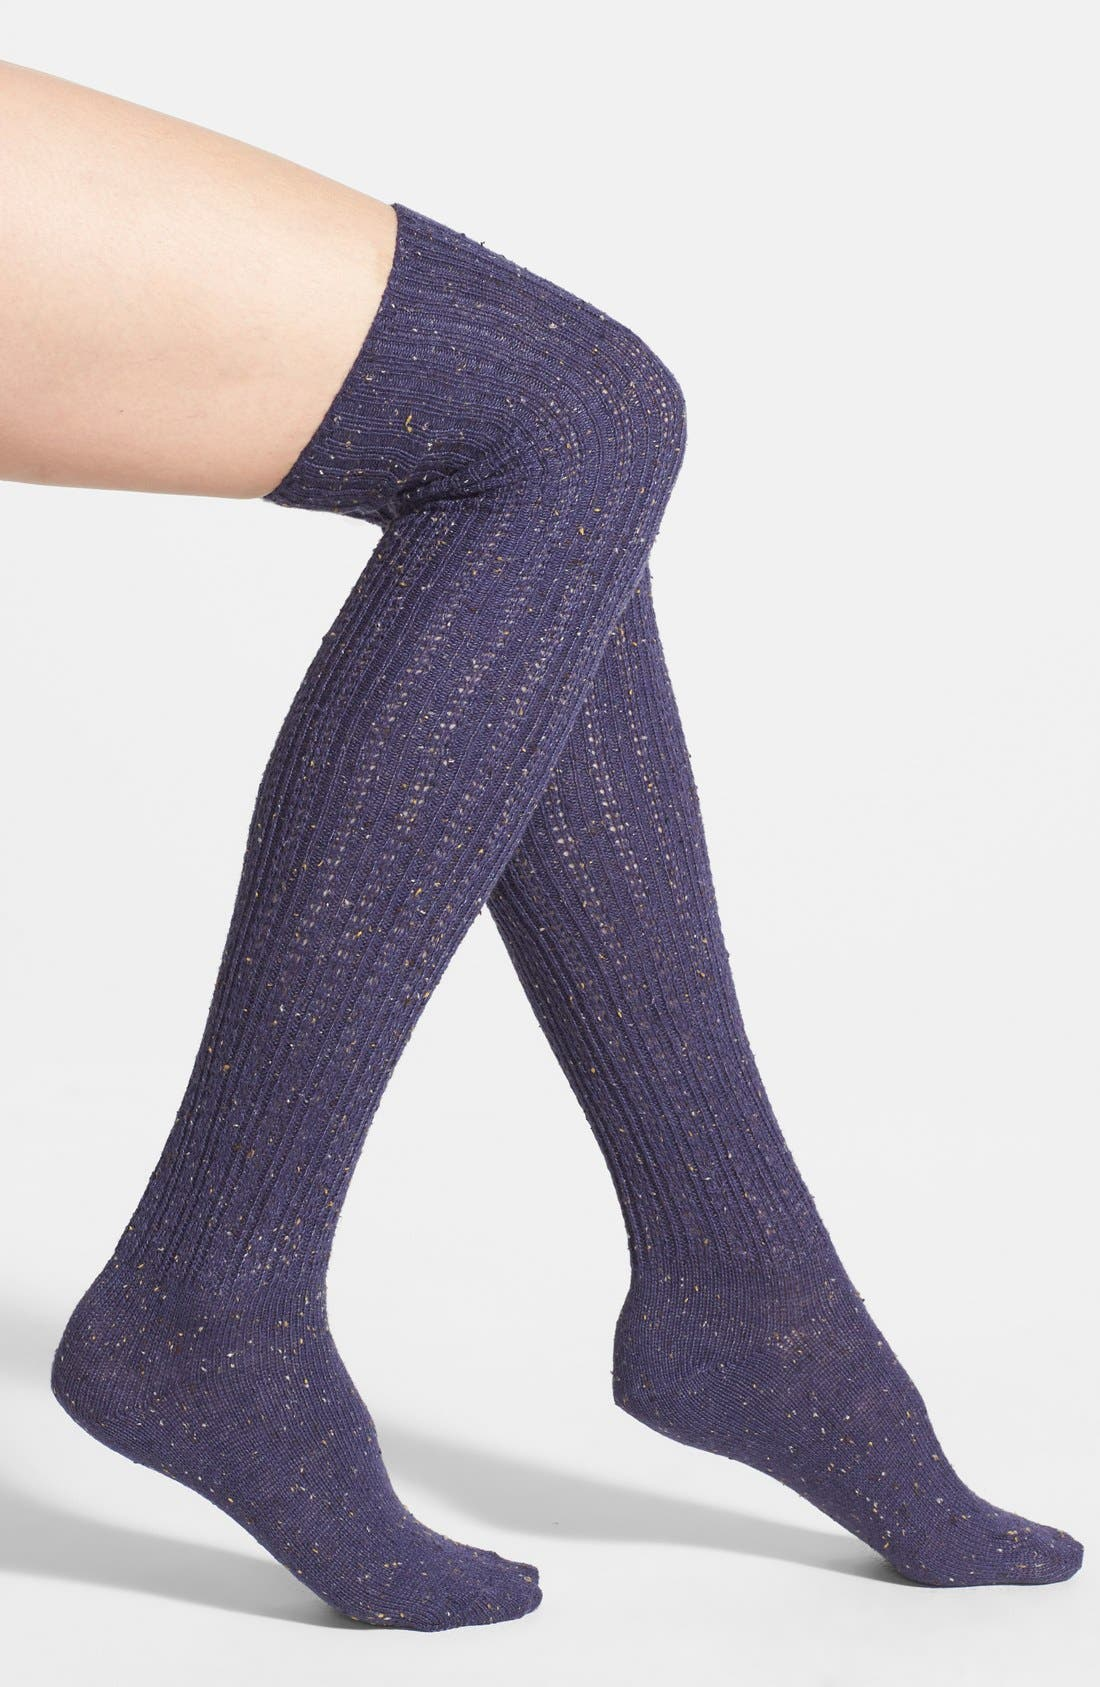 Main Image - Free People Speckled Over the Knee Socks